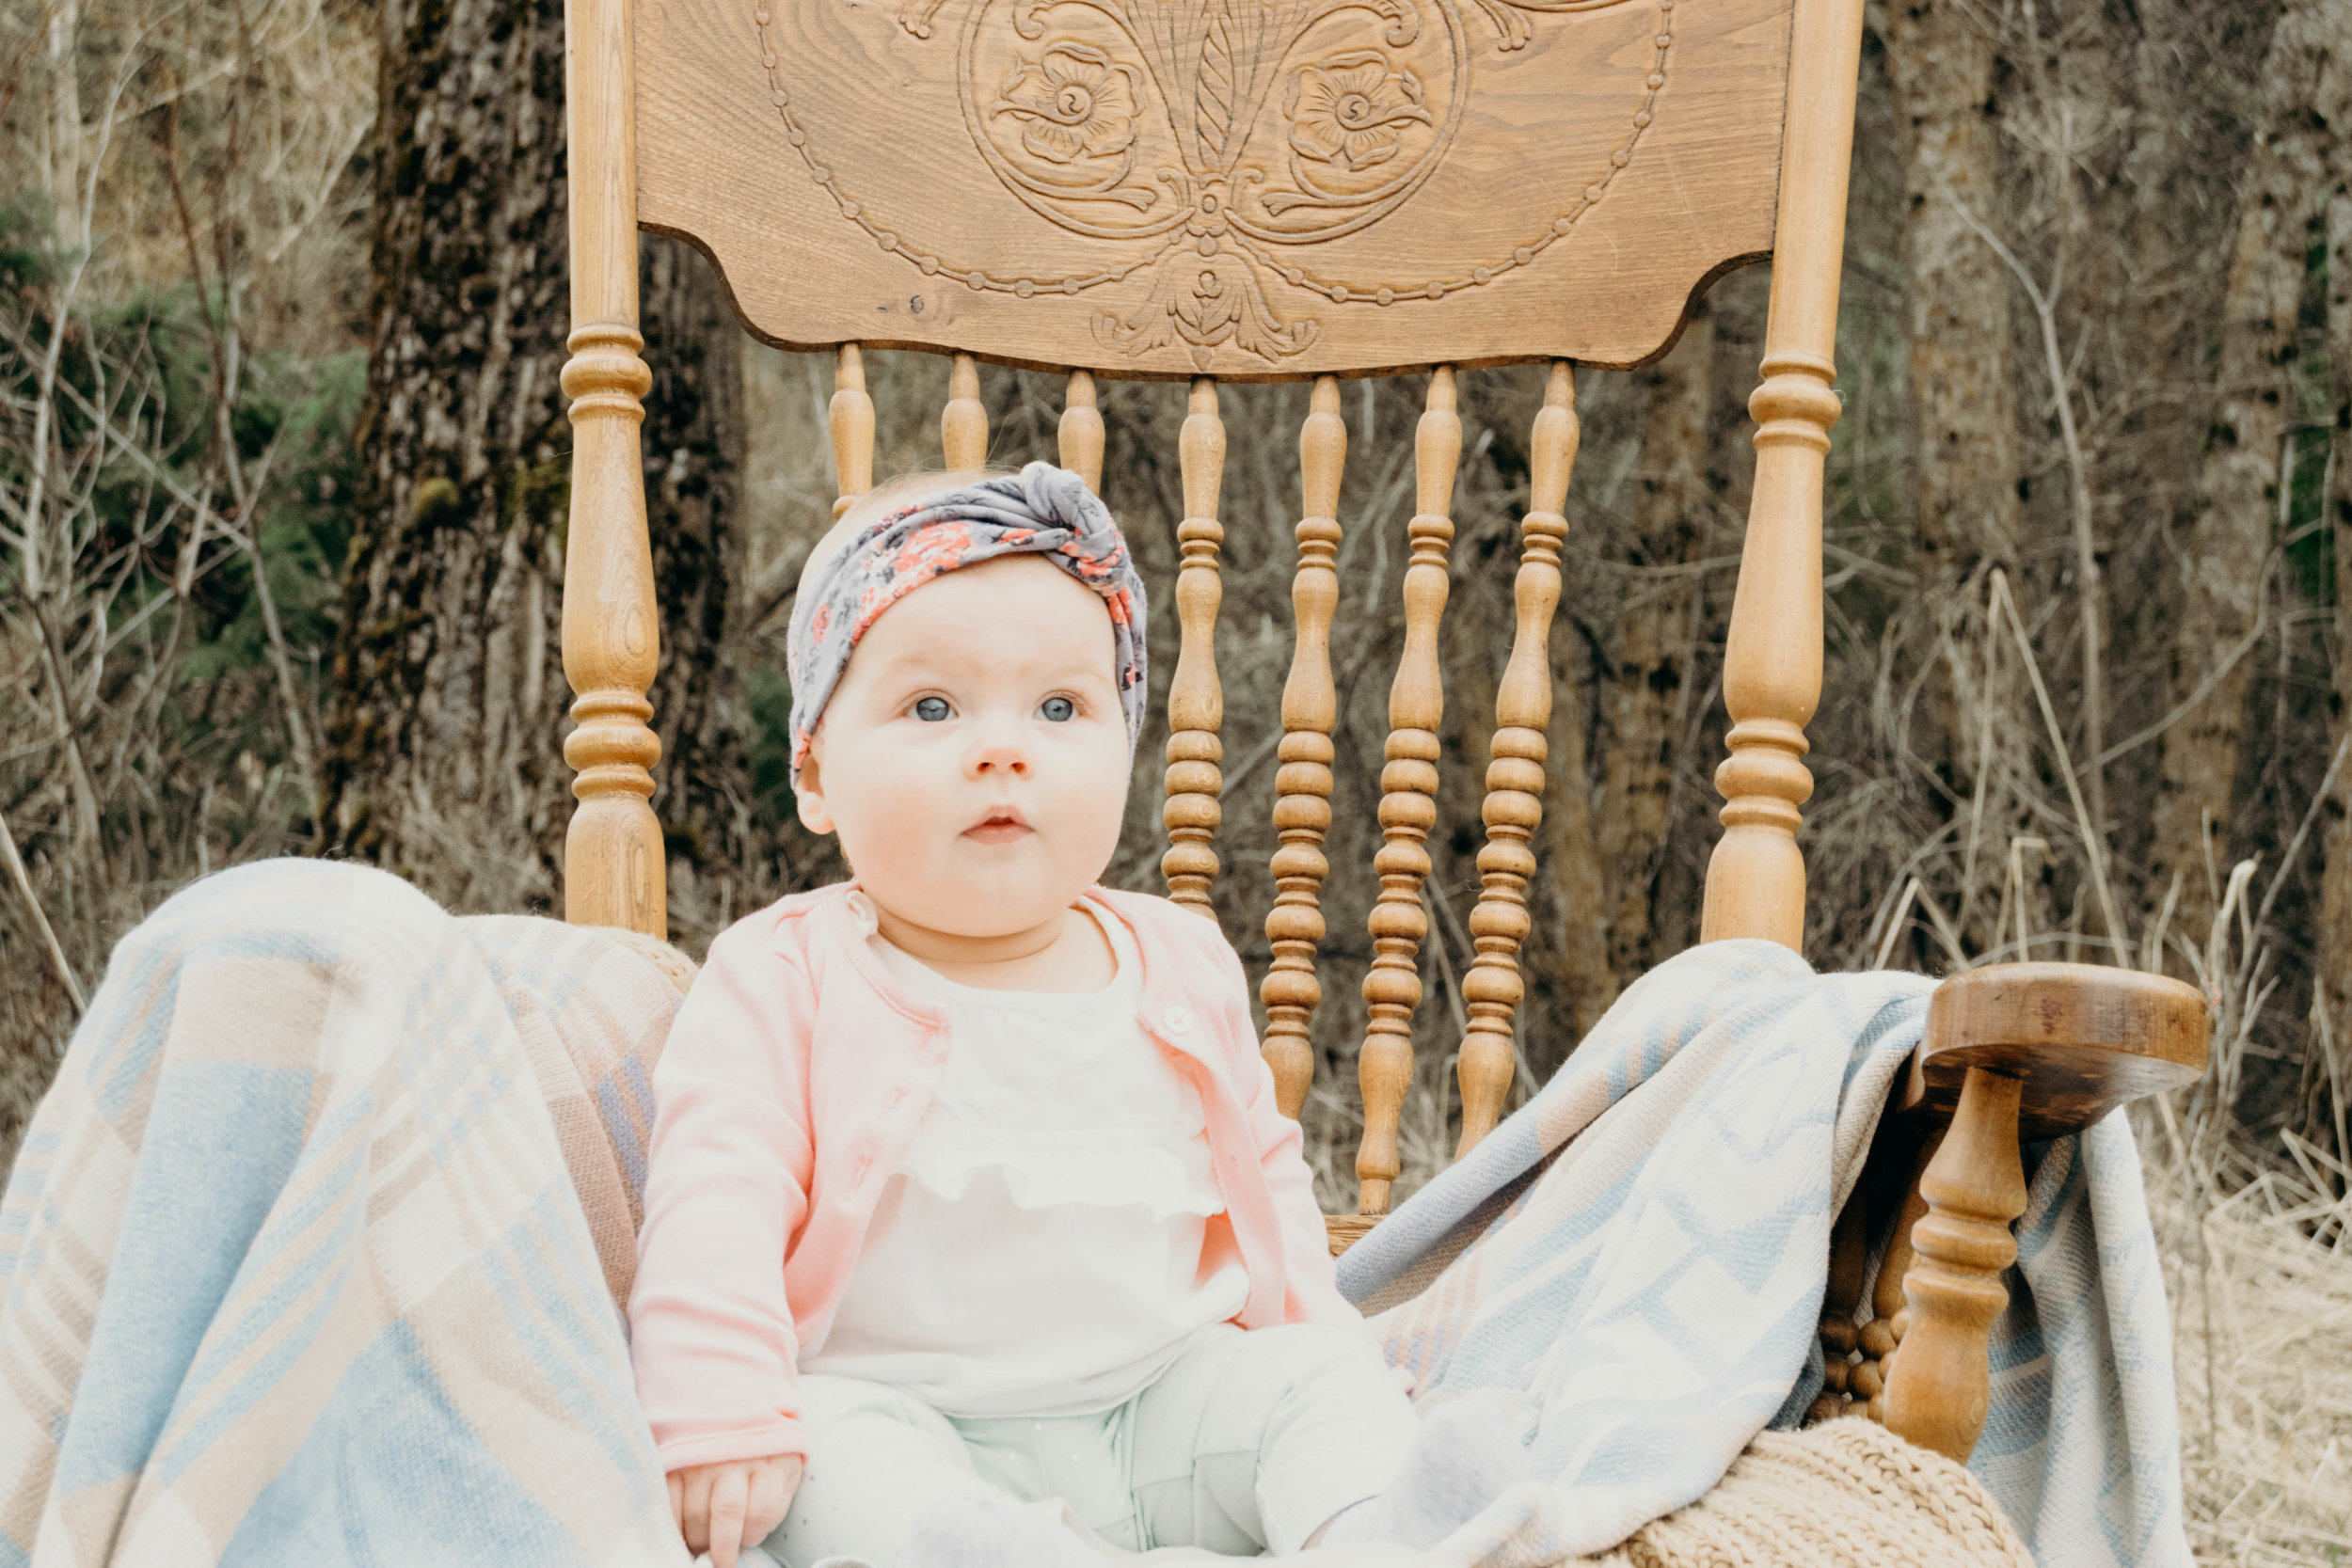 wanger's family session | april 1st 2017 | heather woolery